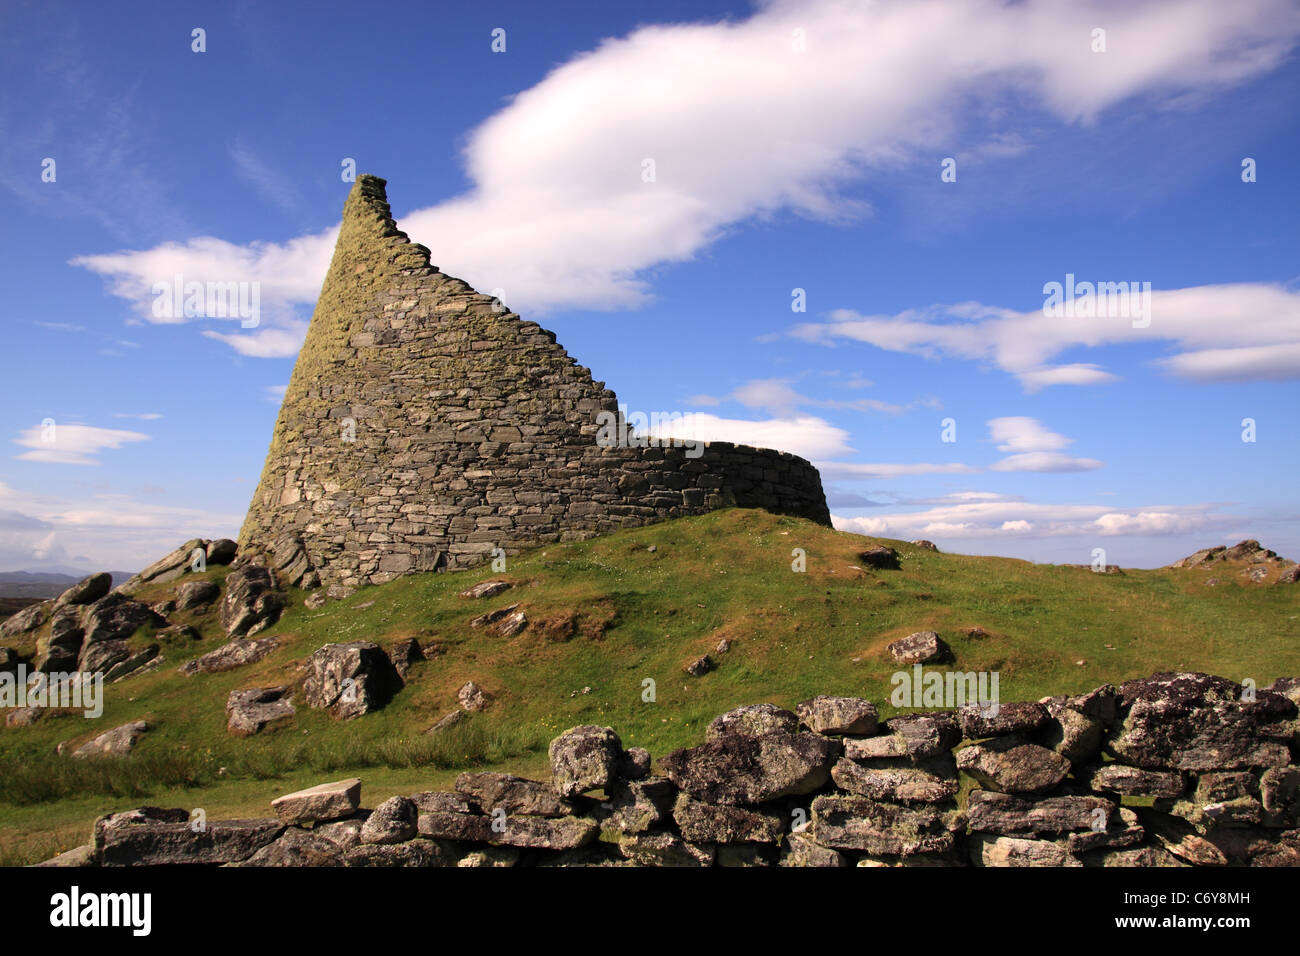 UK Scotland Outer Hebrides Isle of Lewis Carloway Broch - Stock Image